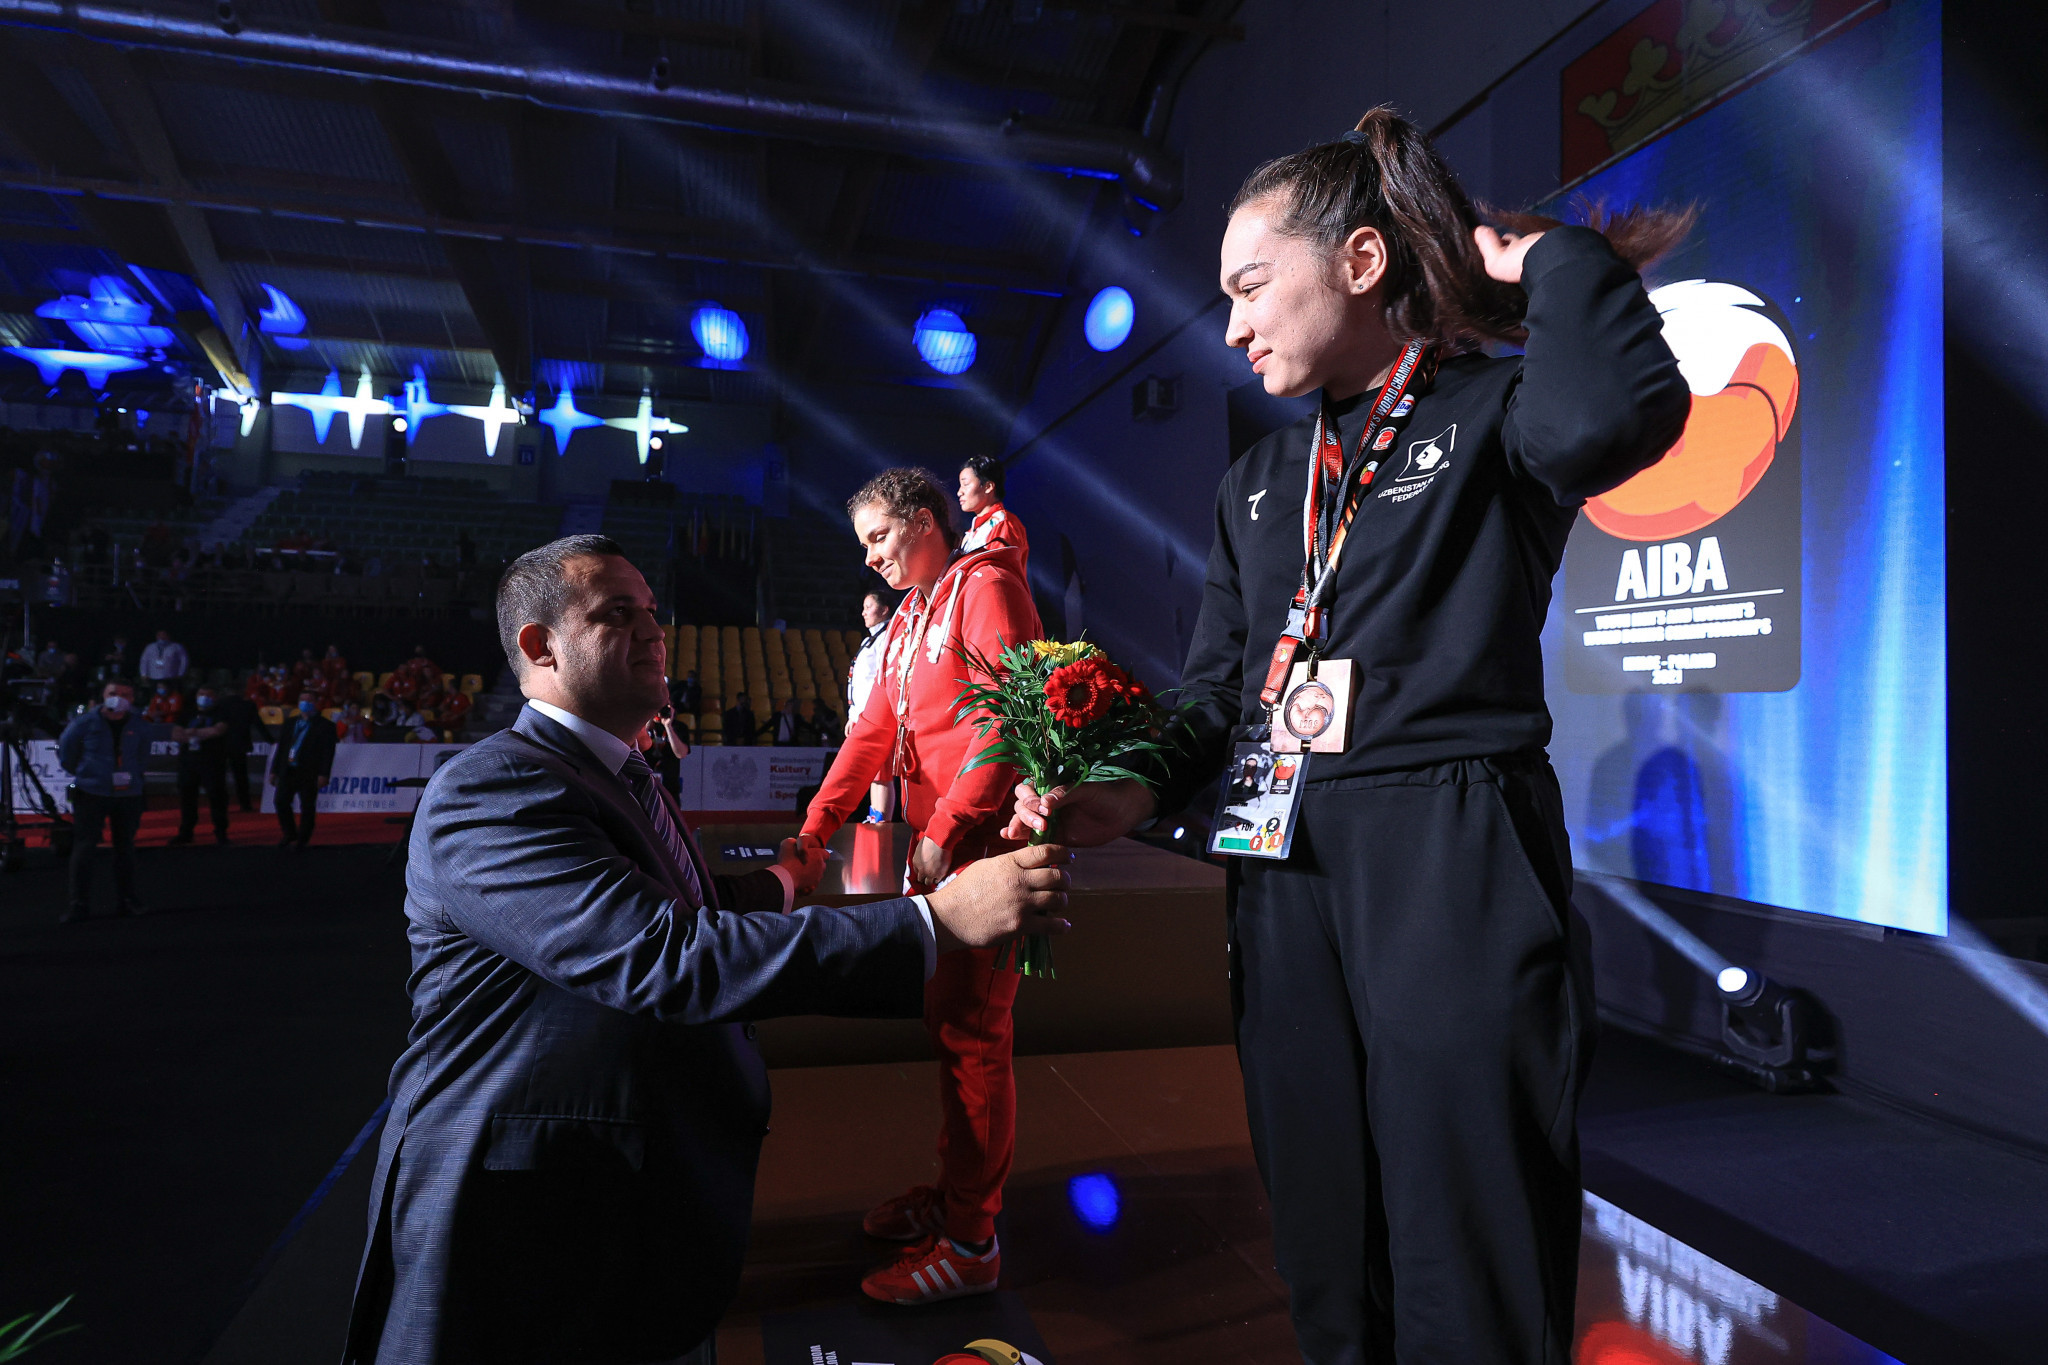 AIBA President Umar Kremlev hands out flowers during a medal ceremony ©AIBA